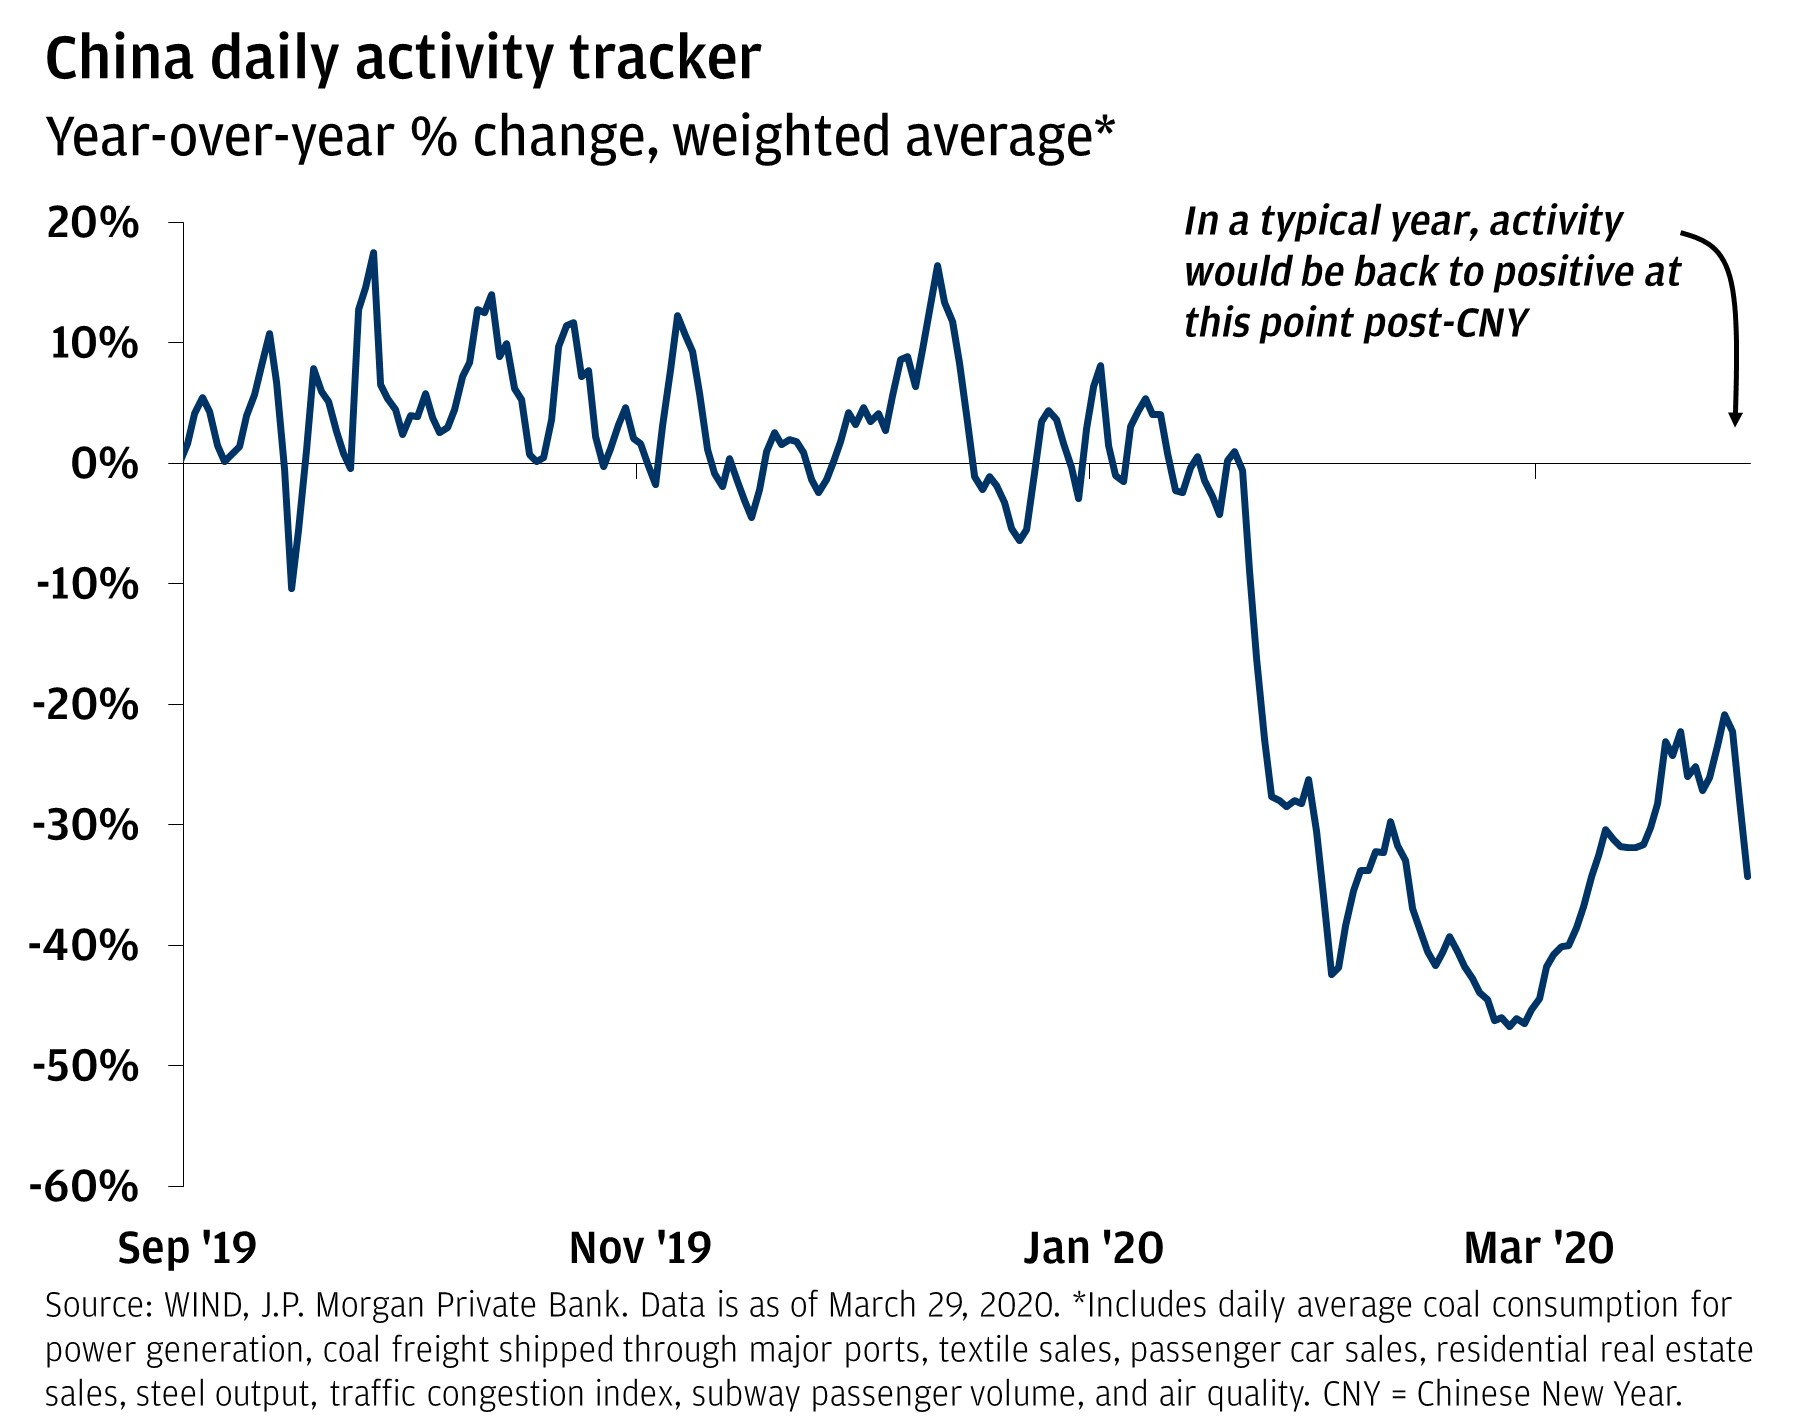 The line chart shows the year-over-year % change as a weighted average of China's daily activity tracker. It shows activity from September 2019 through March 29, 2020, and shows that levels have been under 0% since January 2020.